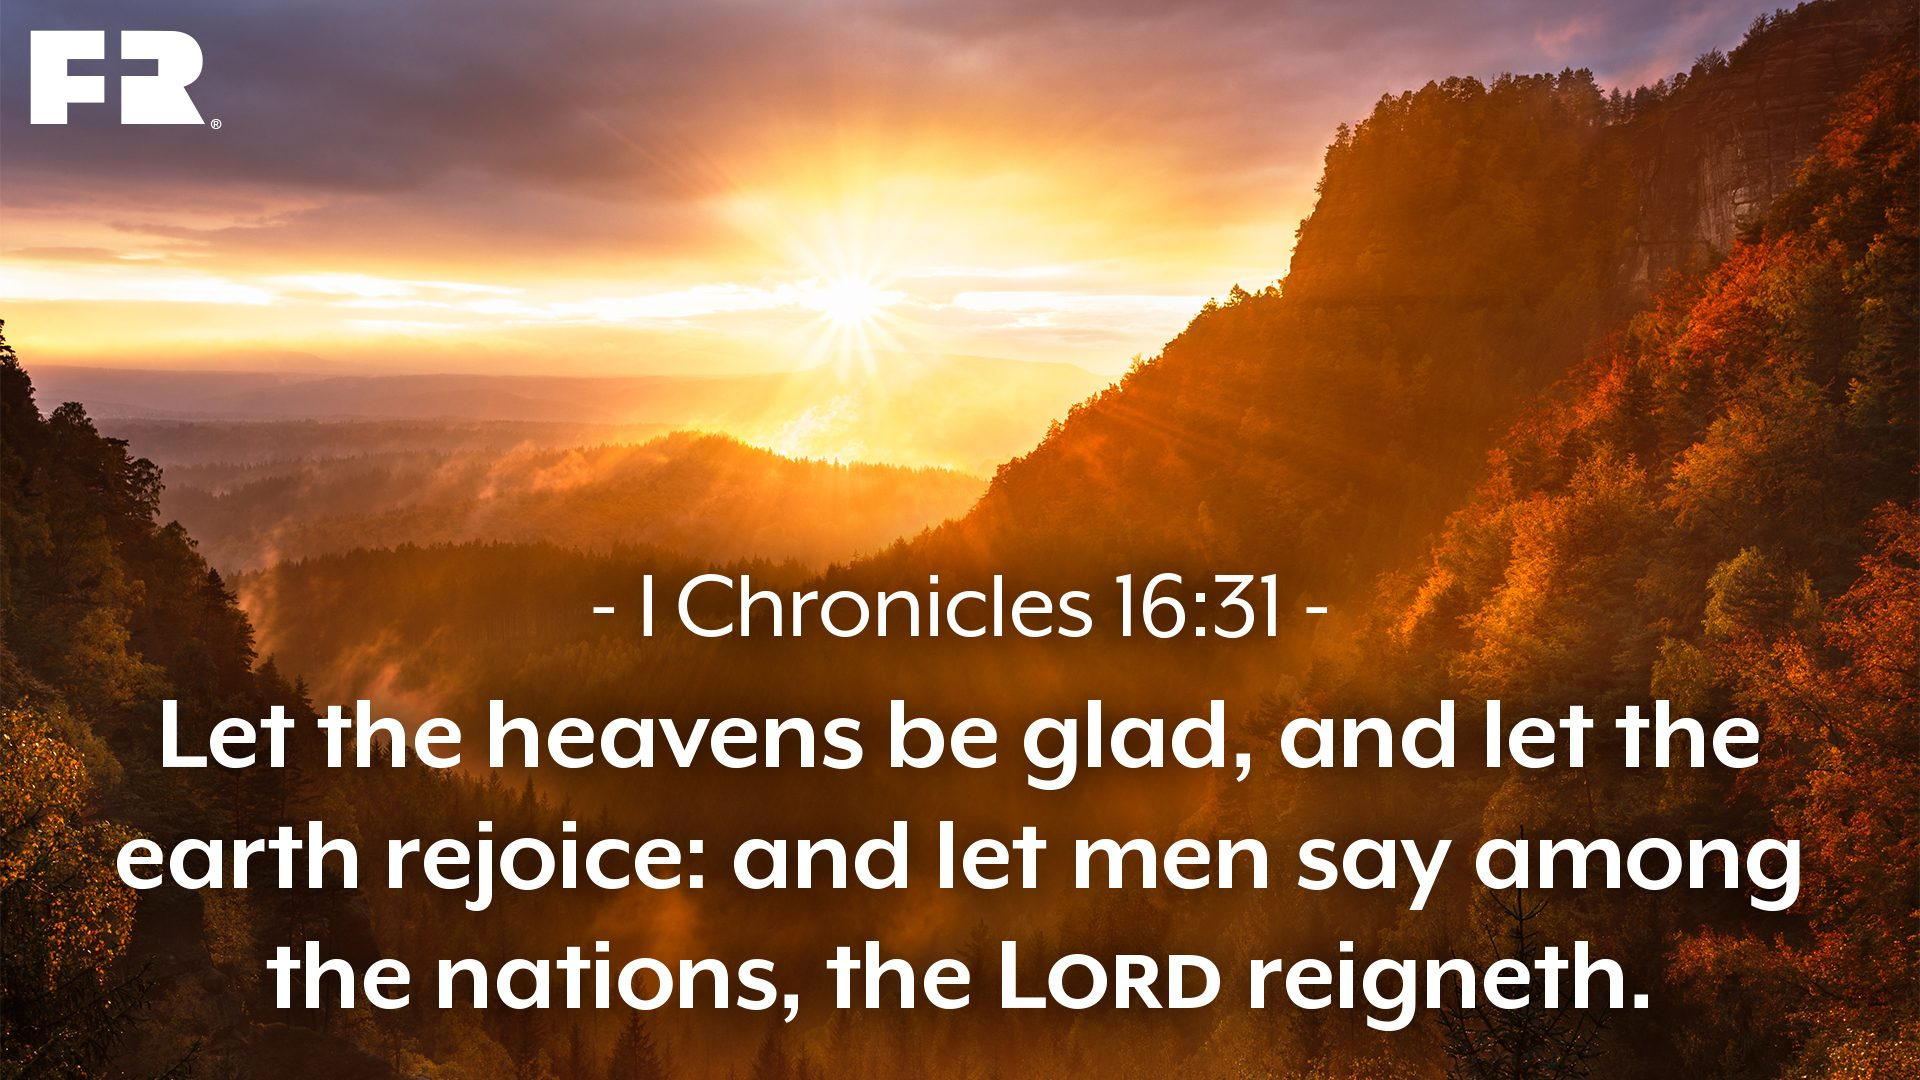 """Let the heavens be glad, and let the earth rejoice:and let men say among the nations, The Lord reigneth."""